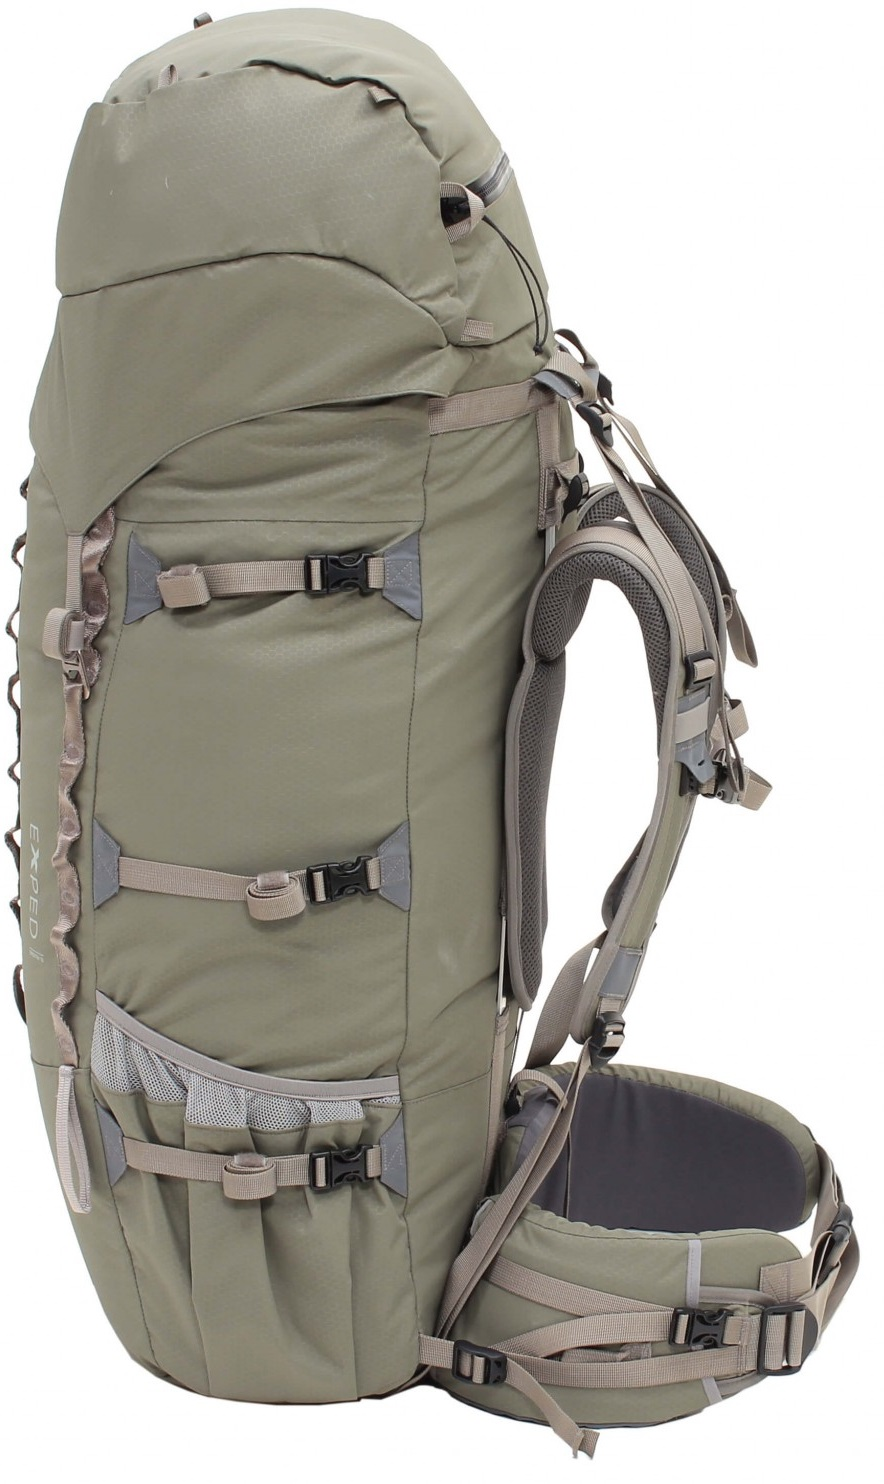 Рюкзак Exped Expedition 100  Black - Фото 2 большая